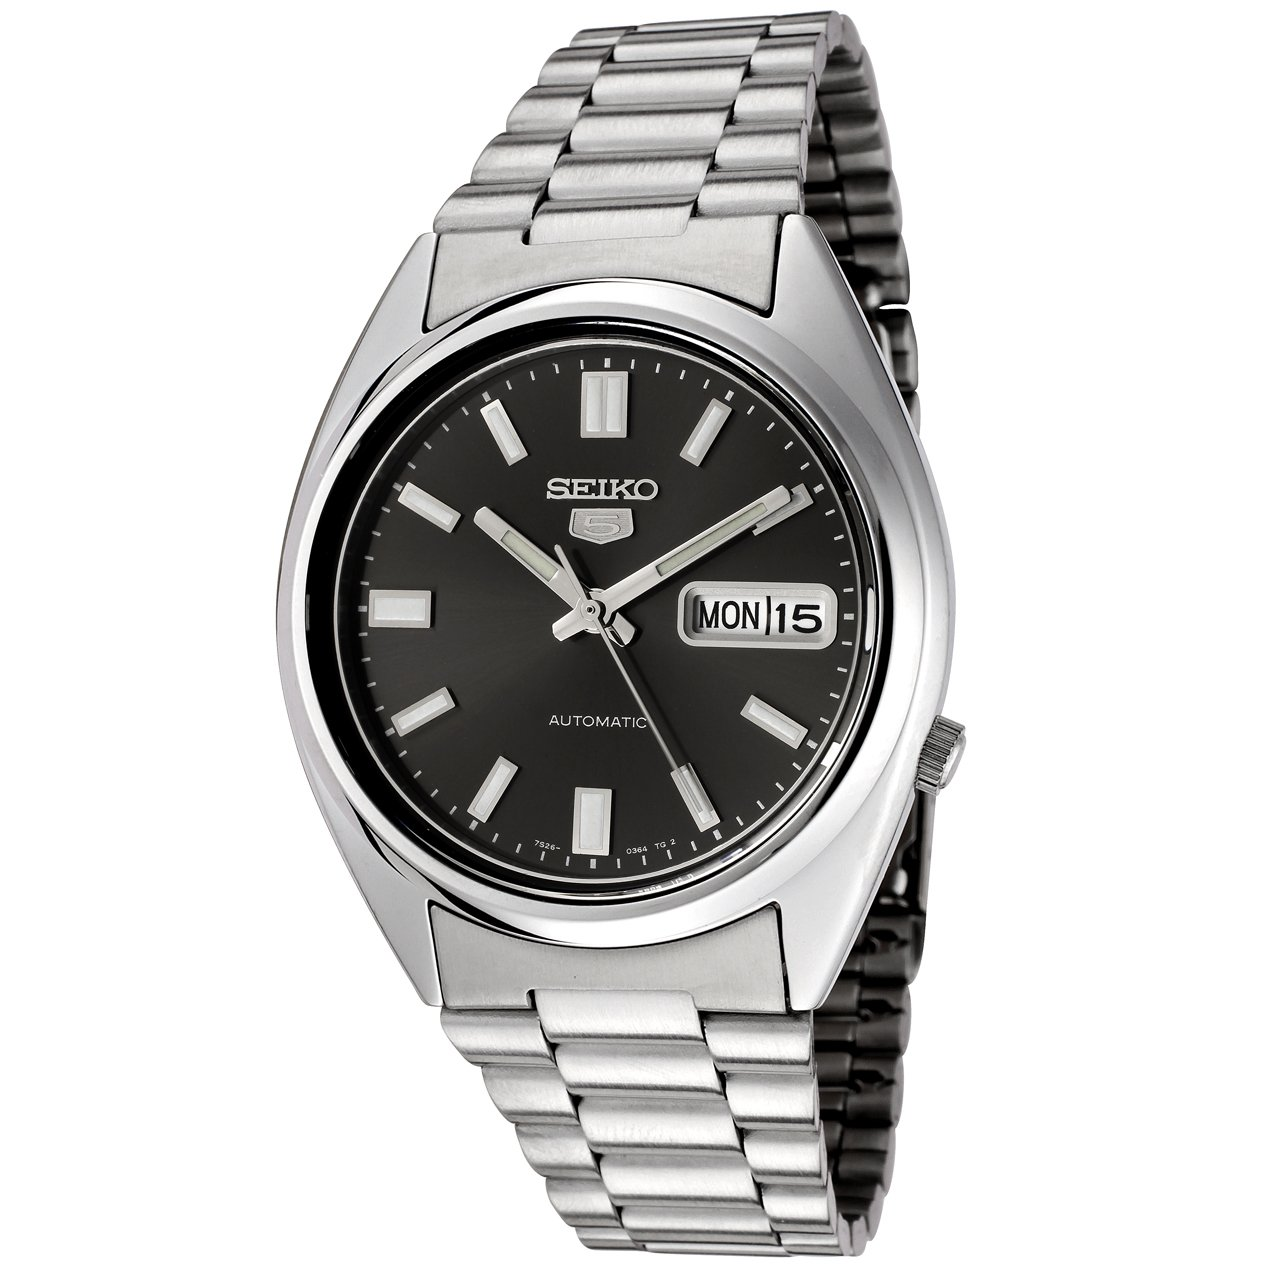 Seiko Men's Snxs79 K Automatic Stainless Steel Watch by Seiko